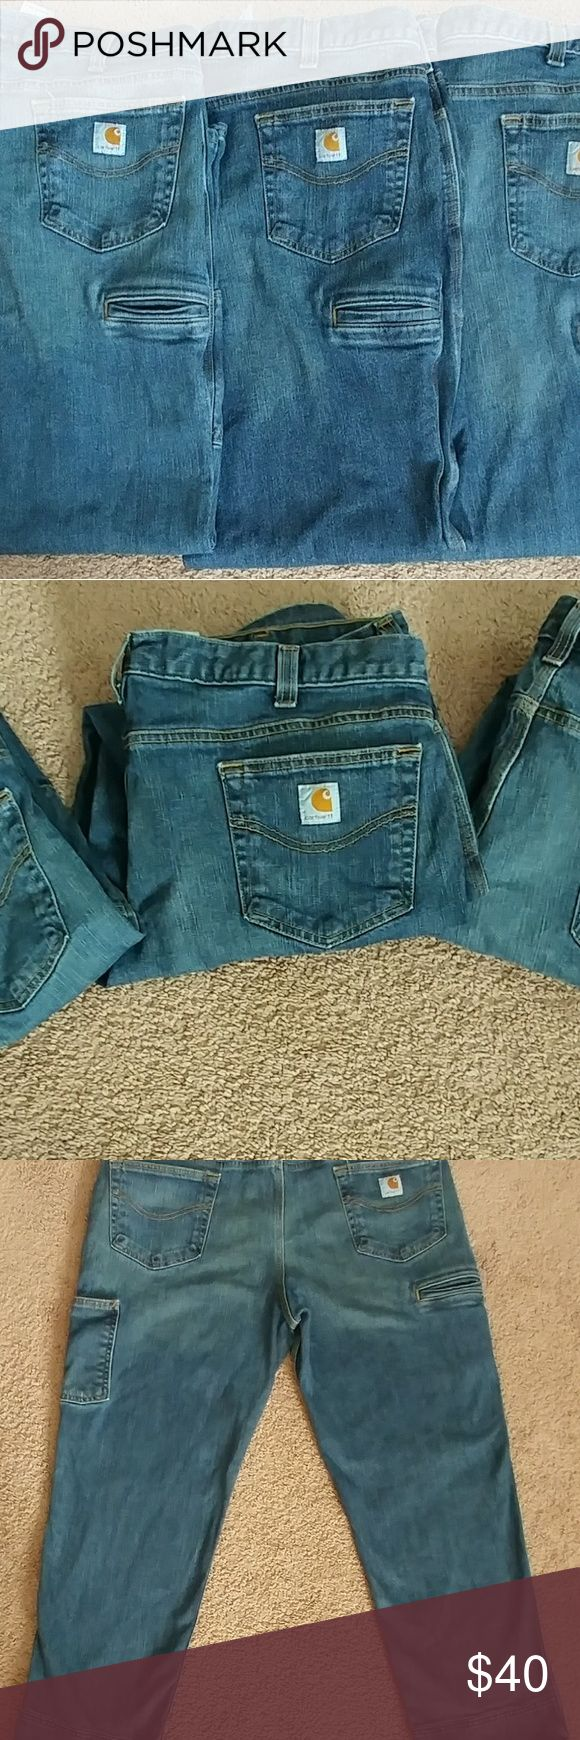 Mens Carhartt Jean Lot 3 pairs of Mens relaxed fit Carhart jeans size 40/32 . These are a tighter fitting jean and do not fit like a relaxed fit jean. Just like new. Carhartt Jeans